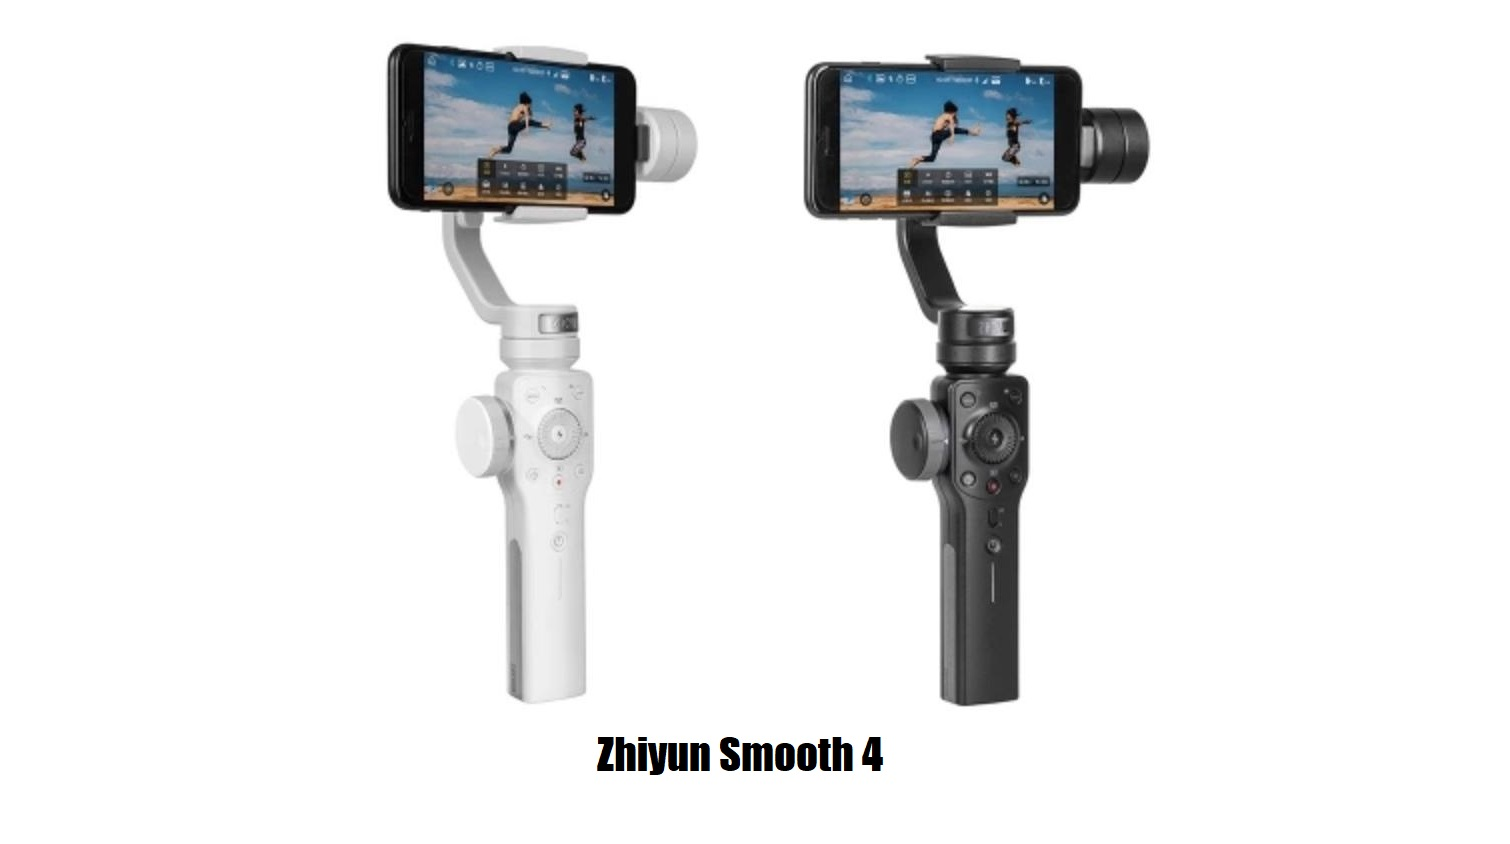 Zhiyun Smooth 4 Pros and Cons